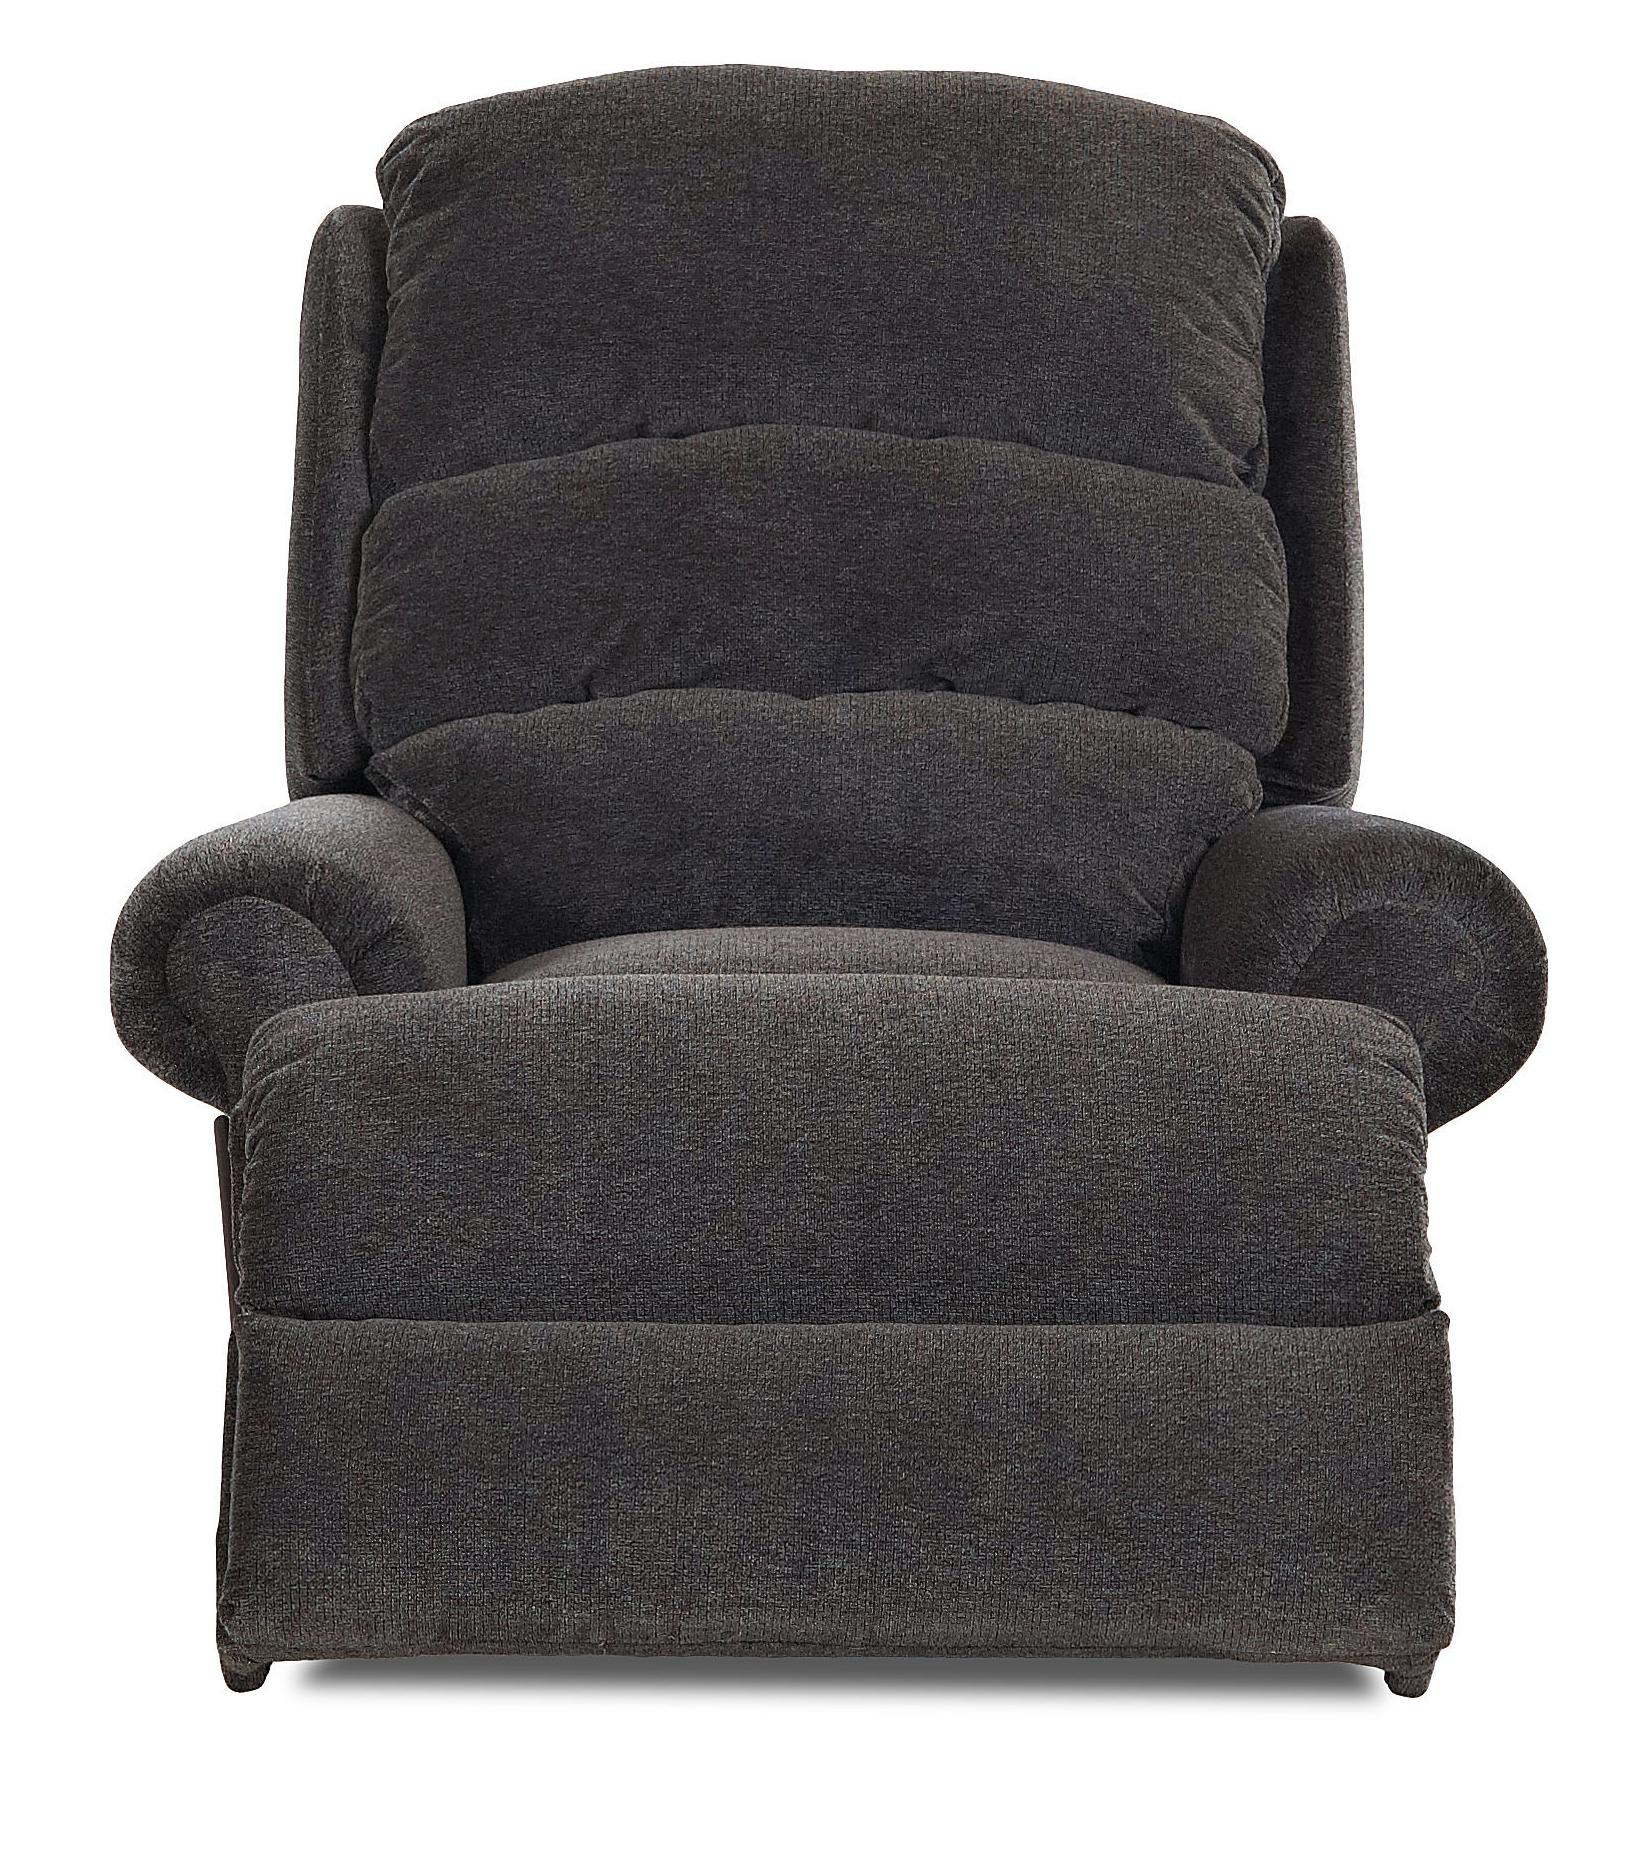 Klaussner Norman Transitional Reclining Rocking Chair - Item Number: 91003H RRC